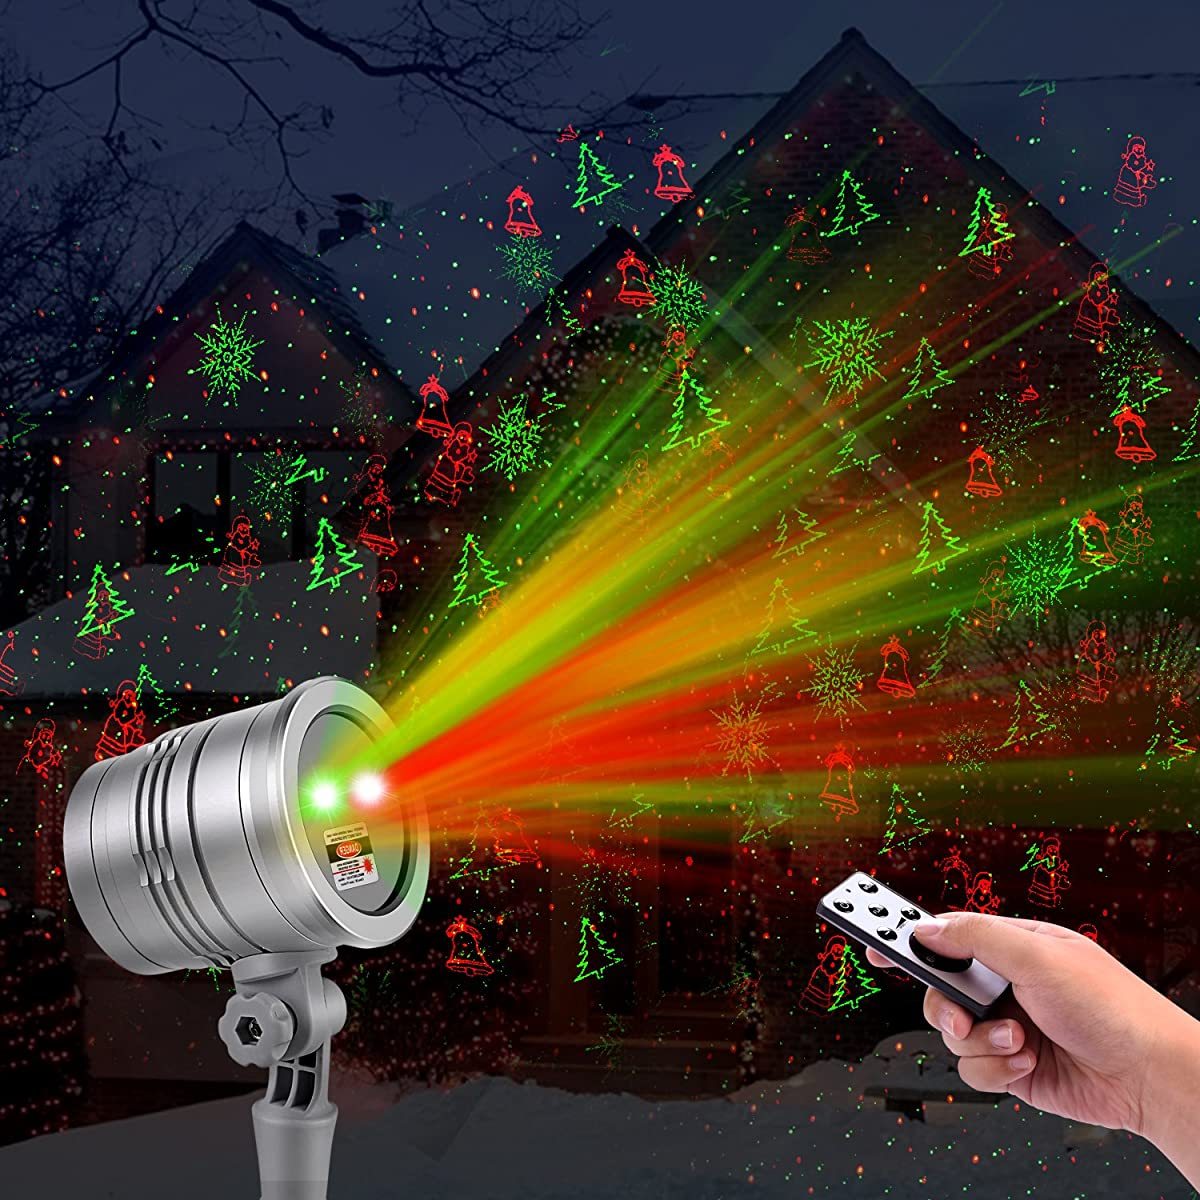 Christmas Laser Lights,Outdoor Projector Lights by Clustars,Stars/Snowflake/Jingling Bell/Xmas Tree/Santa Claus with Remote Control for Xmas,Birthday Decoration(1-Pack)